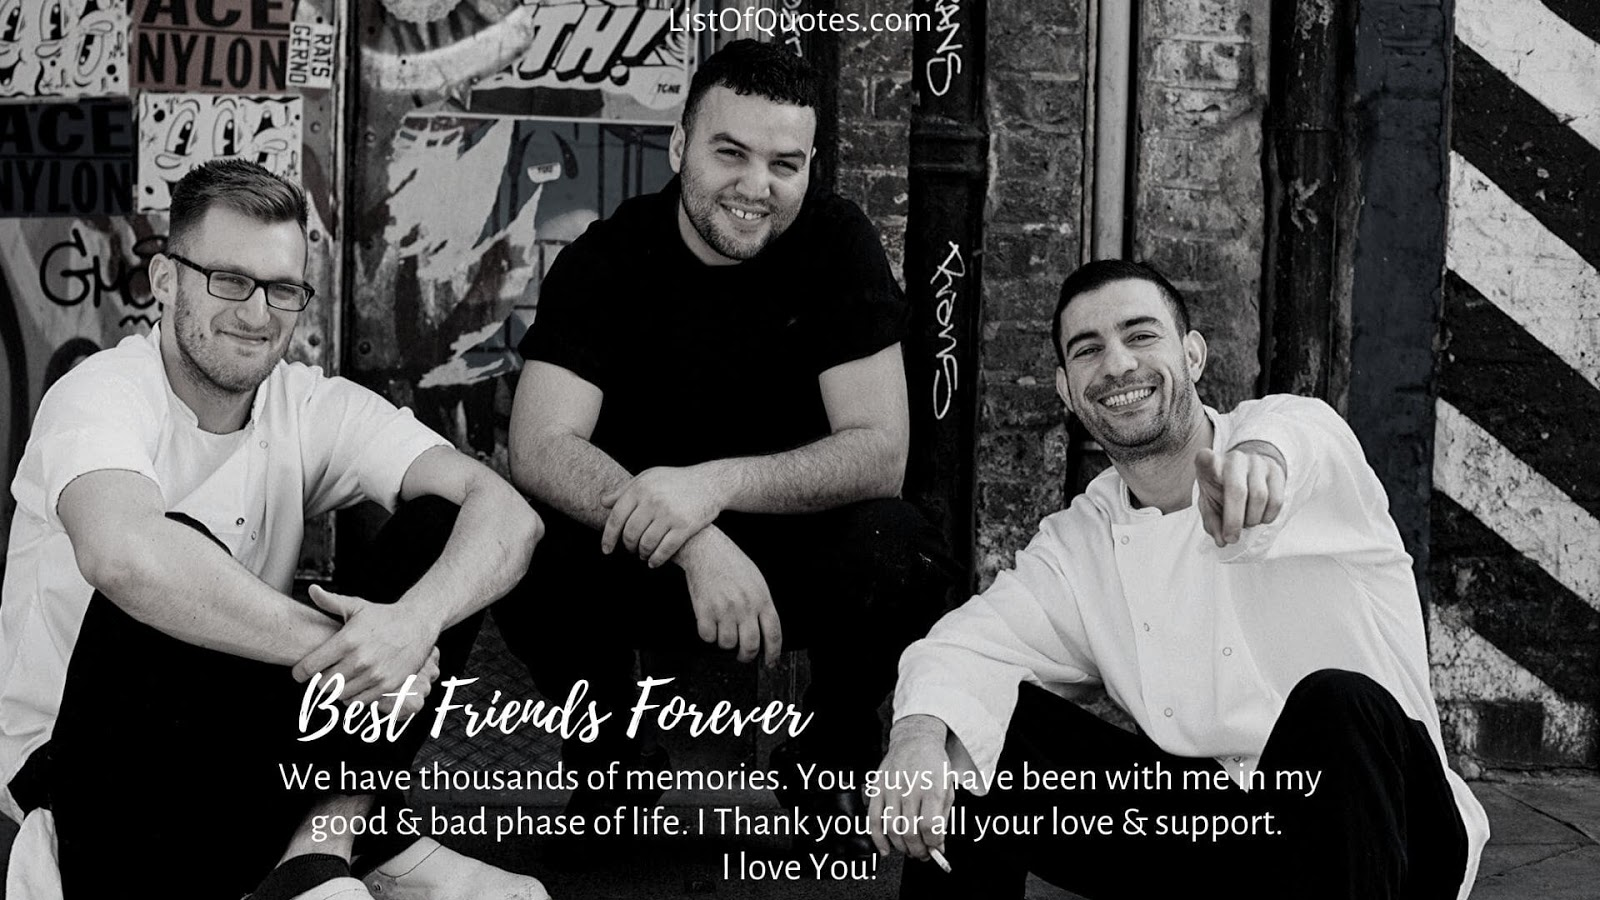 best friendship day short quotes that make you cry HD images free downloadbest friendship day short quotes that make you cry HD images free download